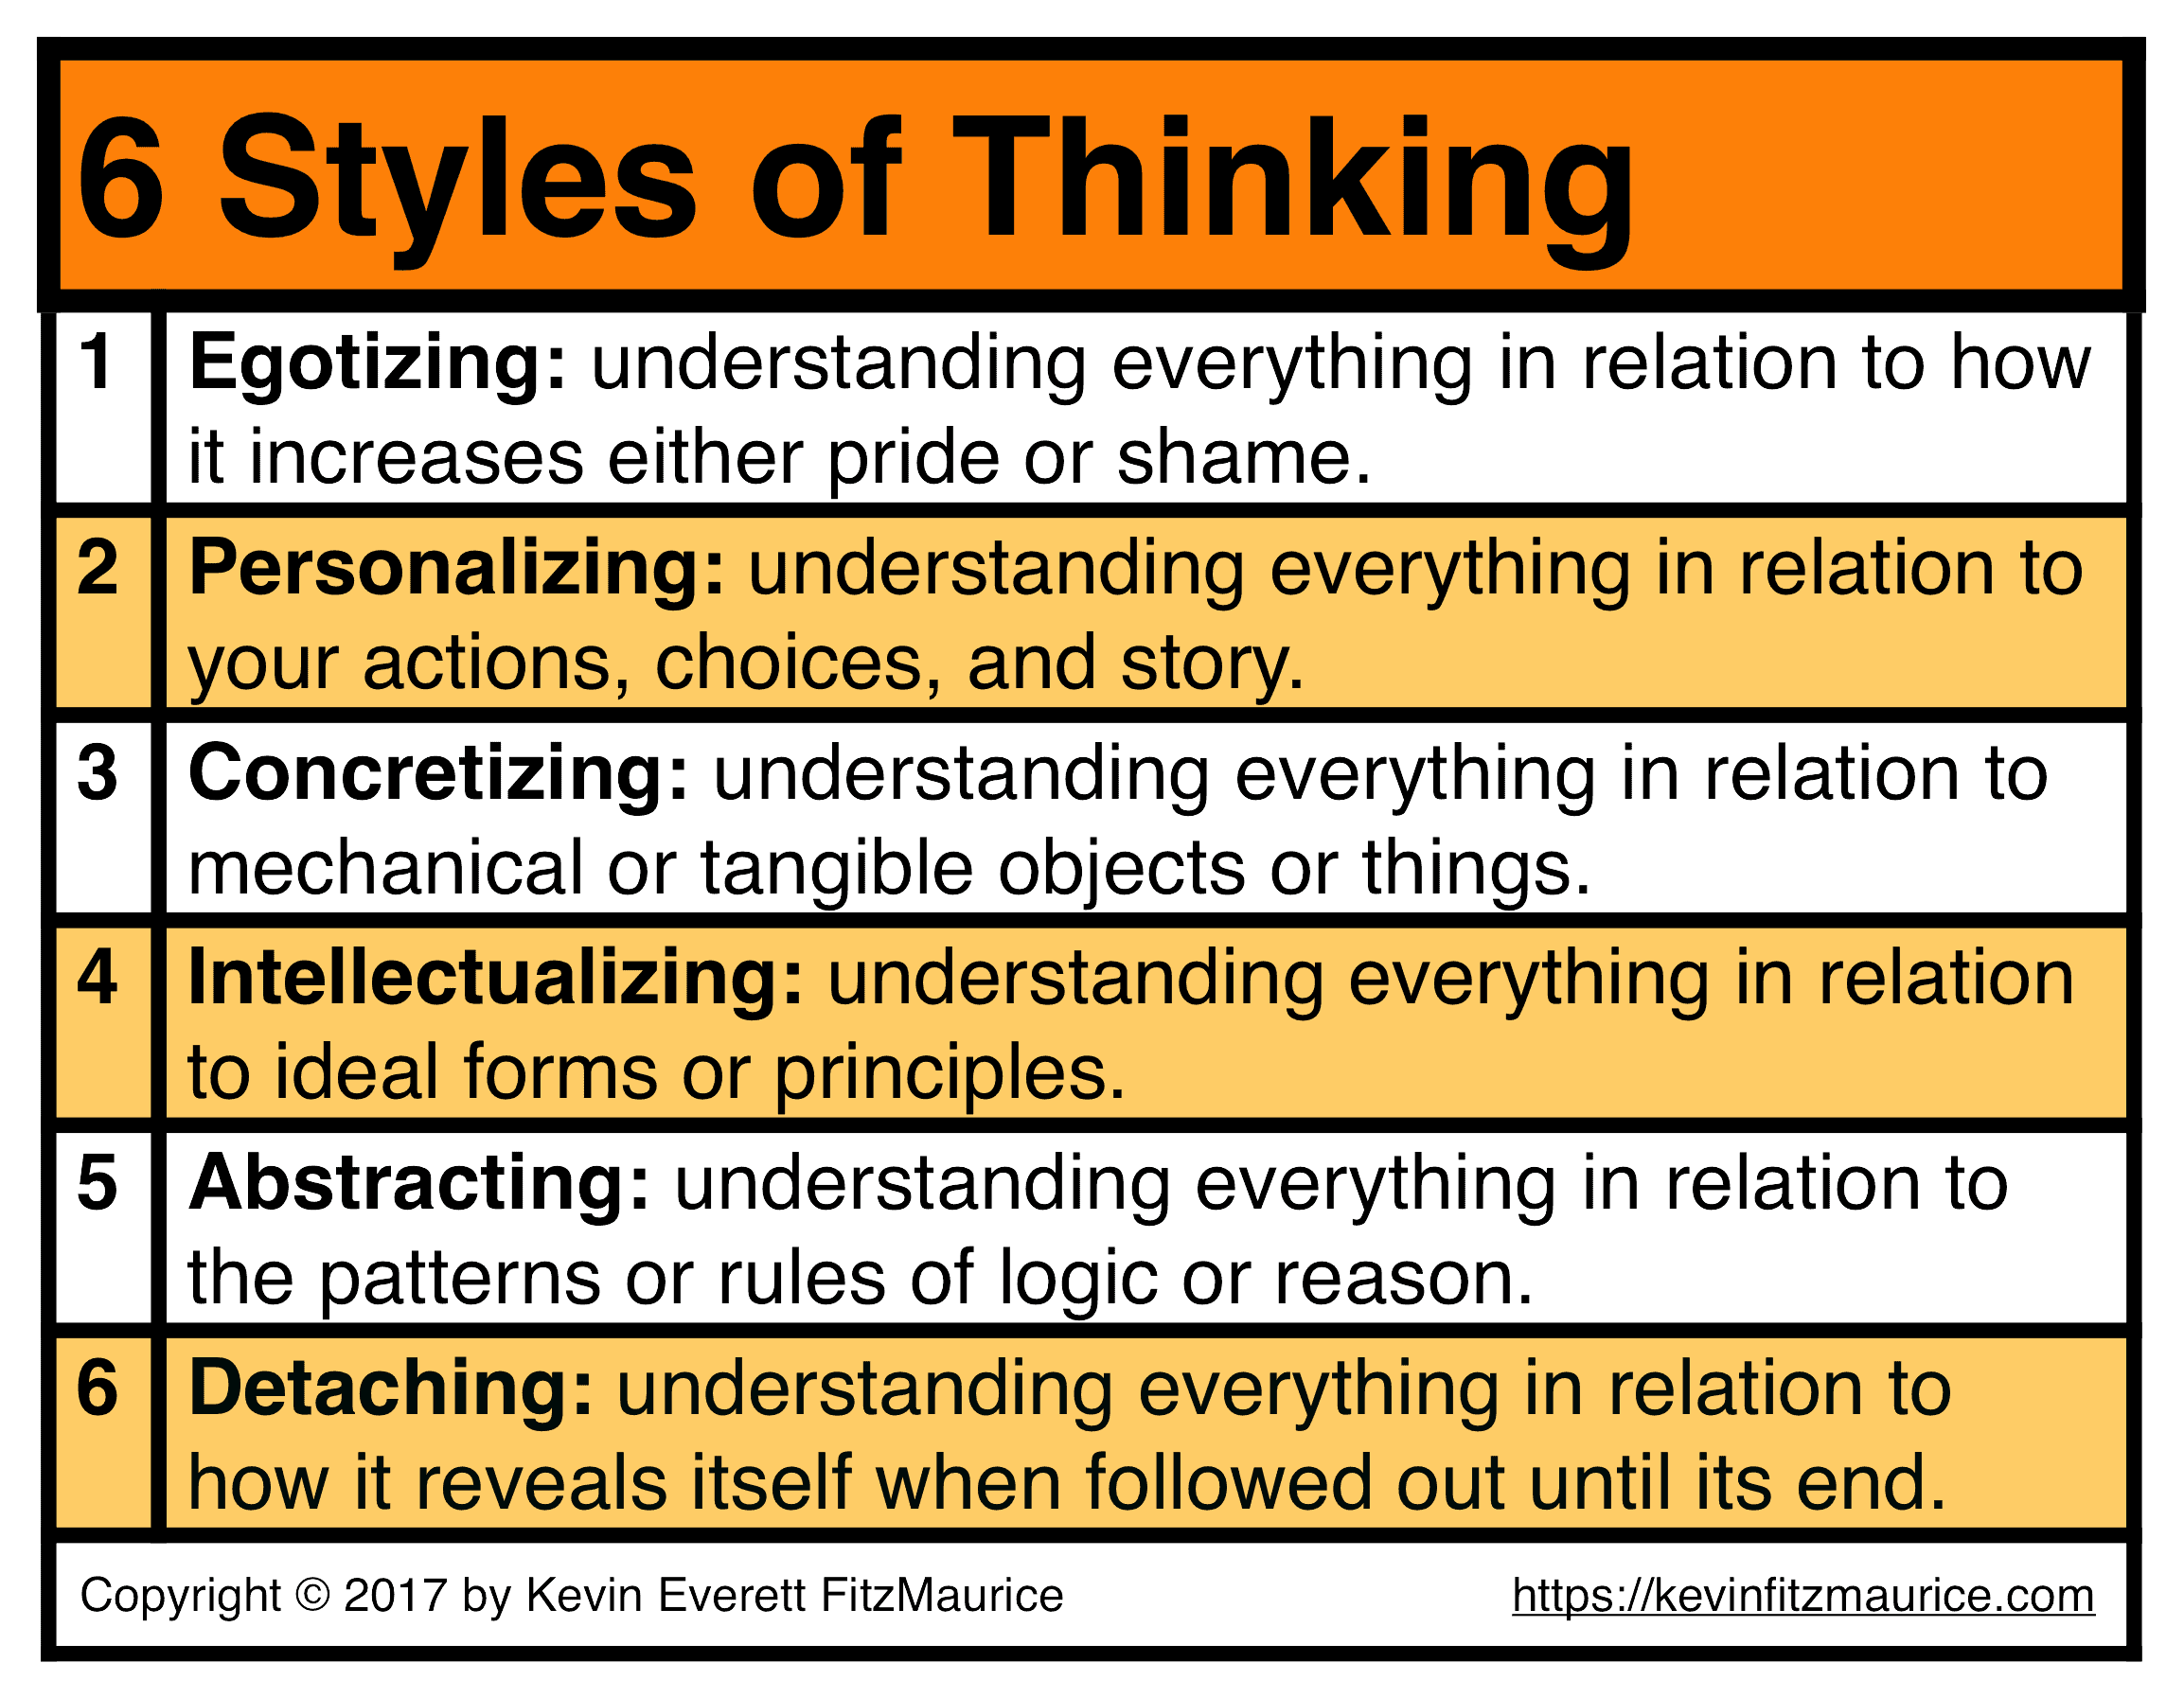 Table of the 6 Styles of Thinking